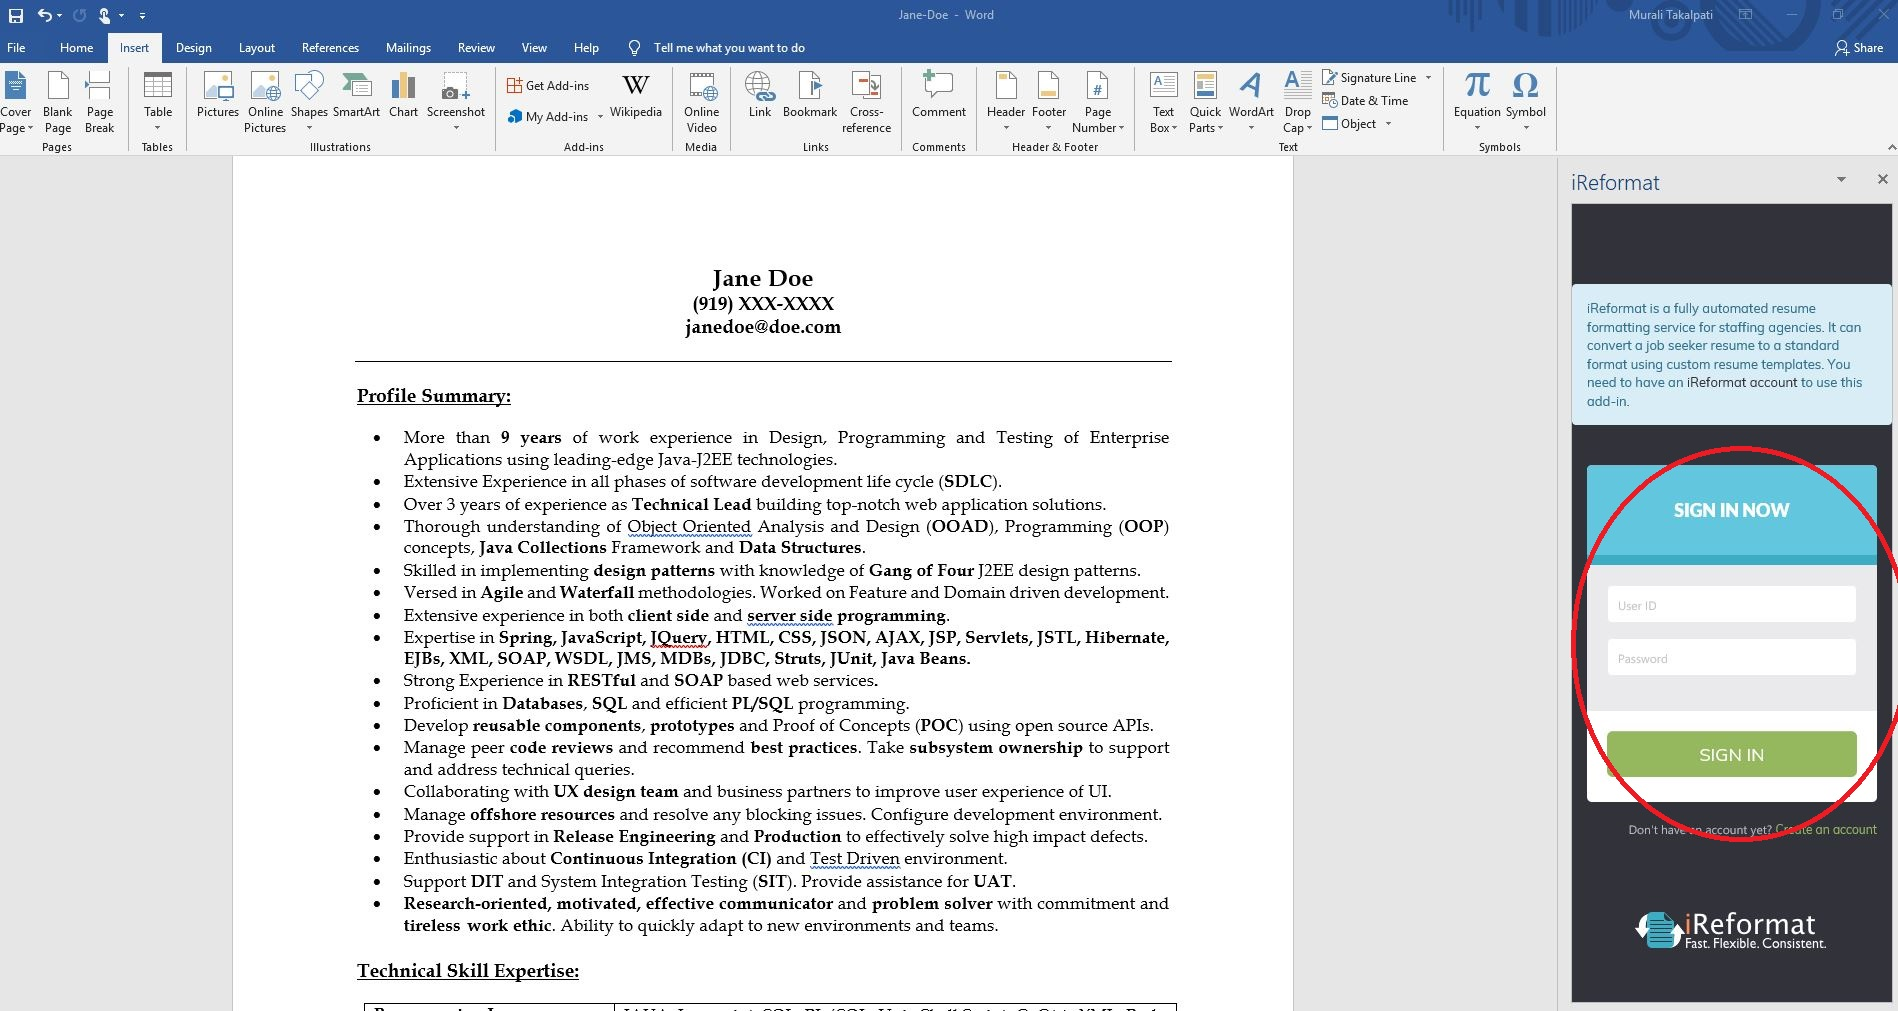 Formatting A Resume In Word Automated Resume Formatting Service Using Microsoft Word 2013